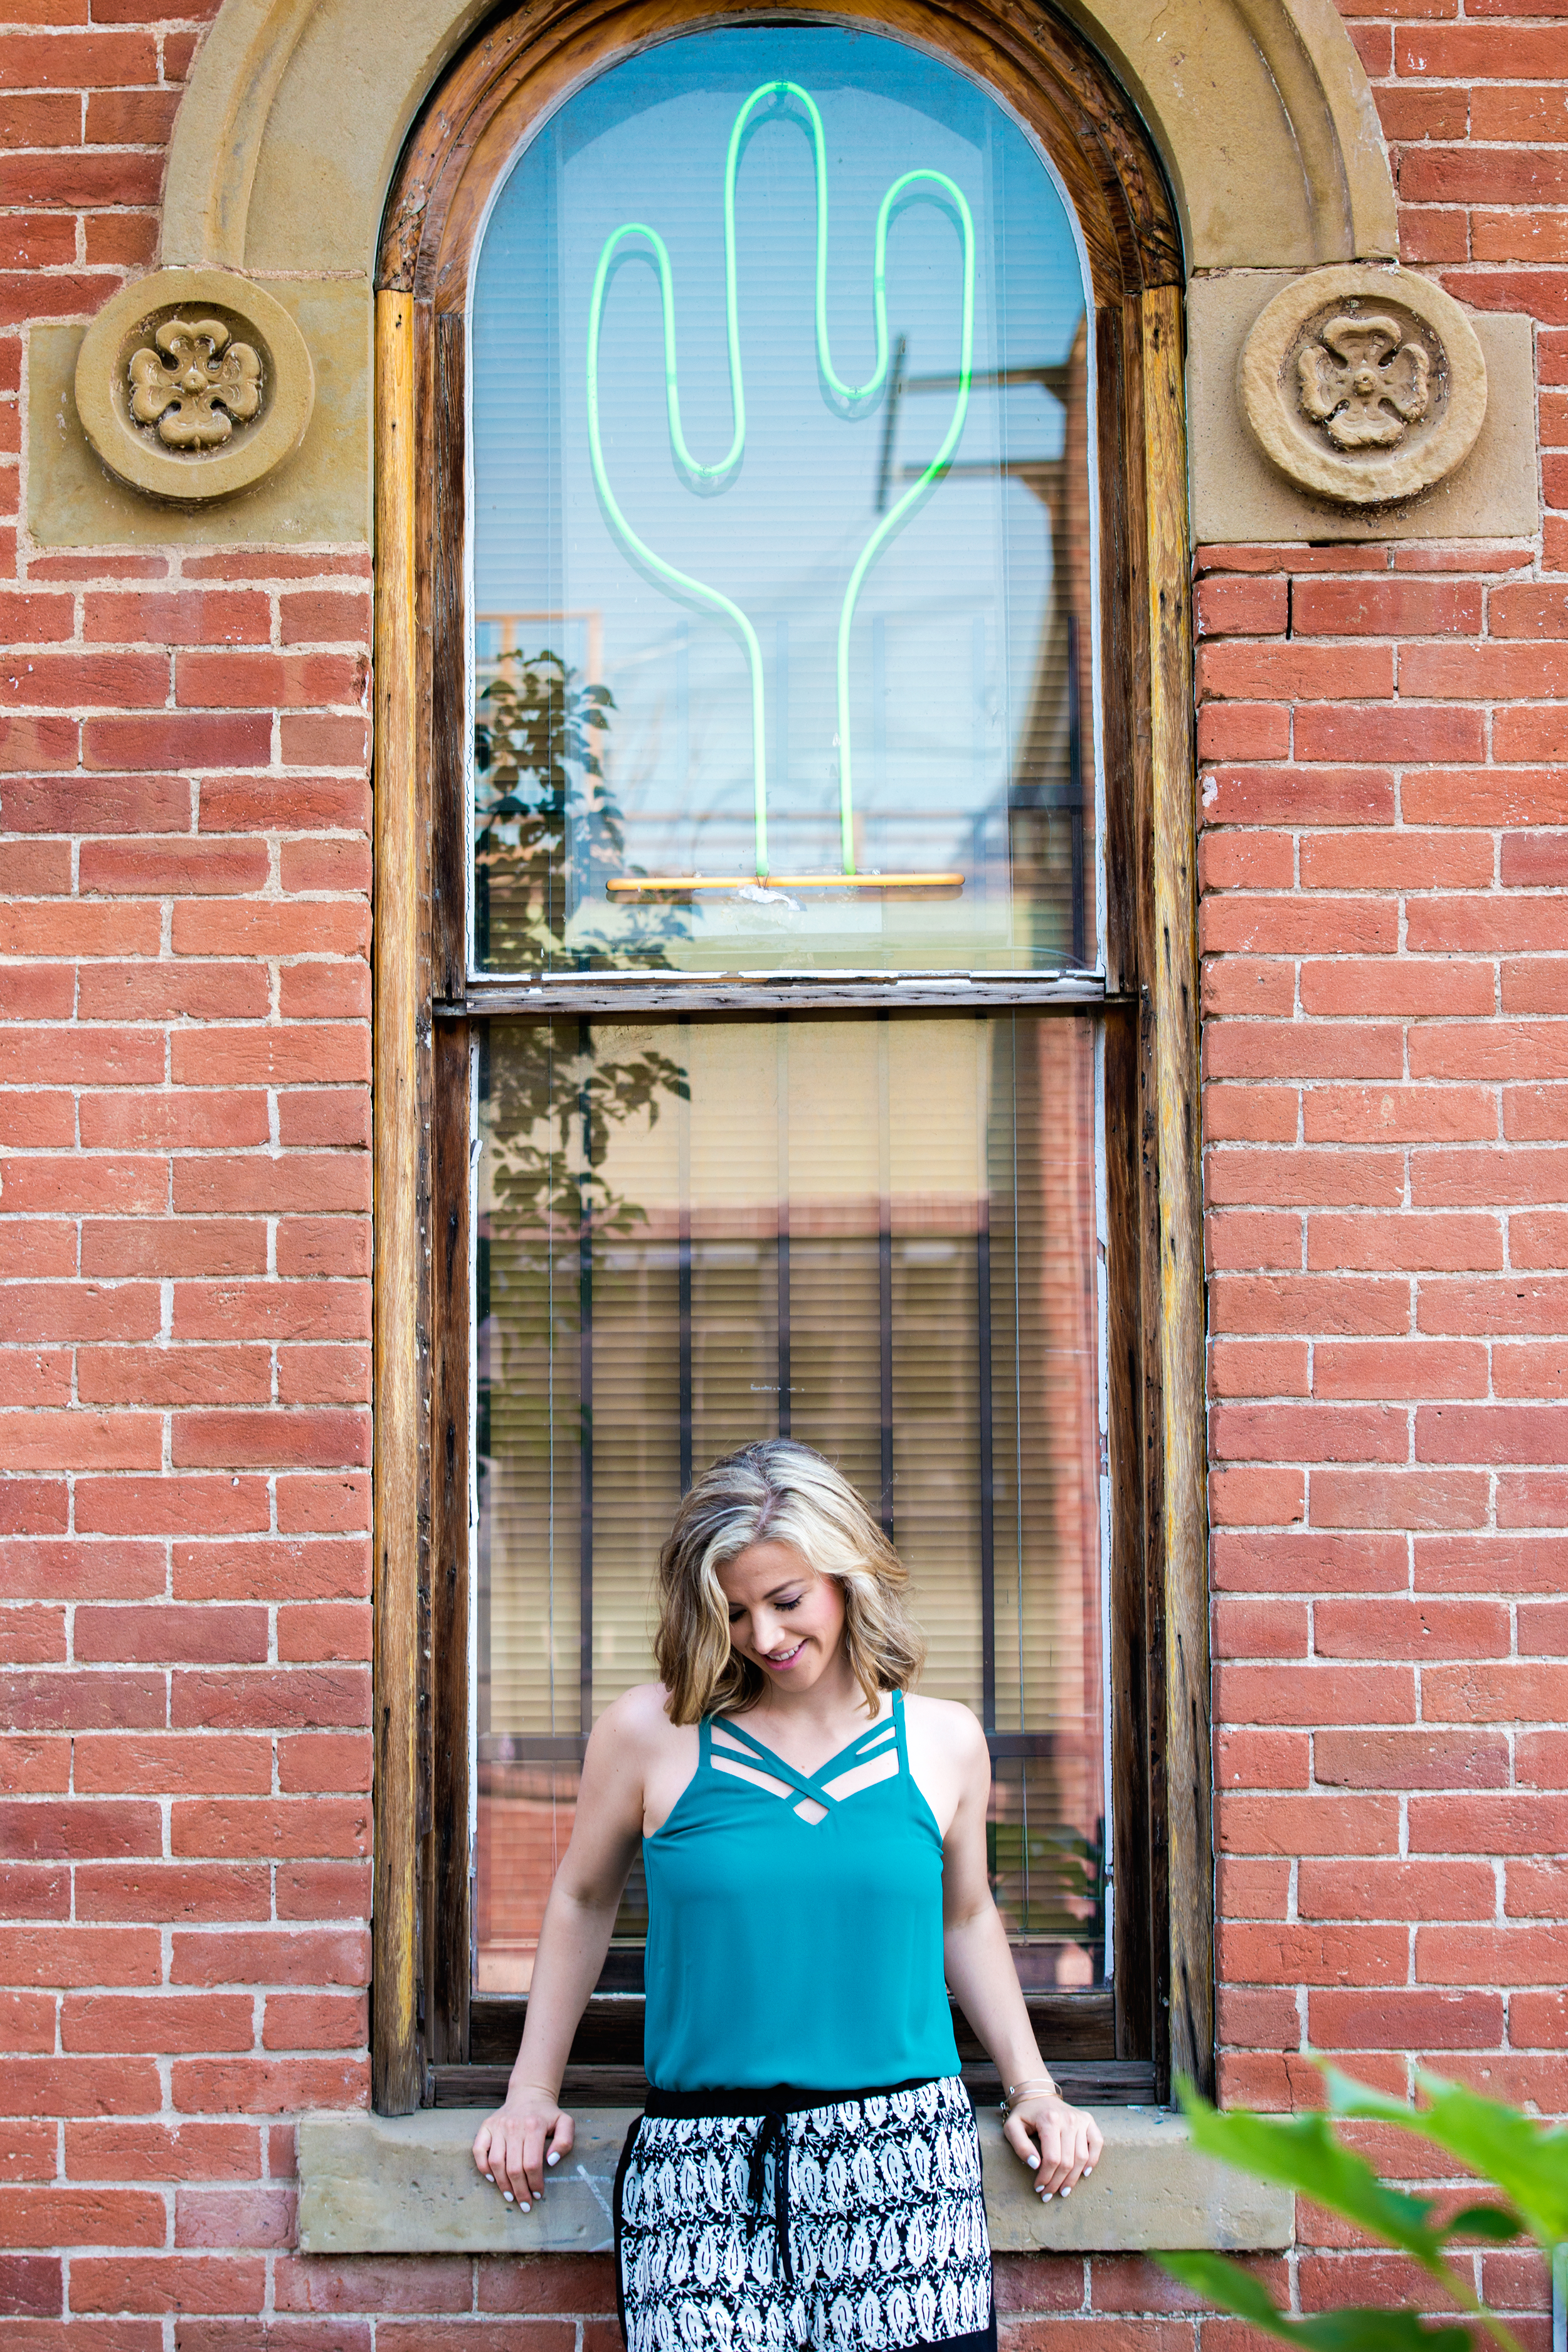 An advertising fashion lifestyle image with a neon cactus in Denver, CO